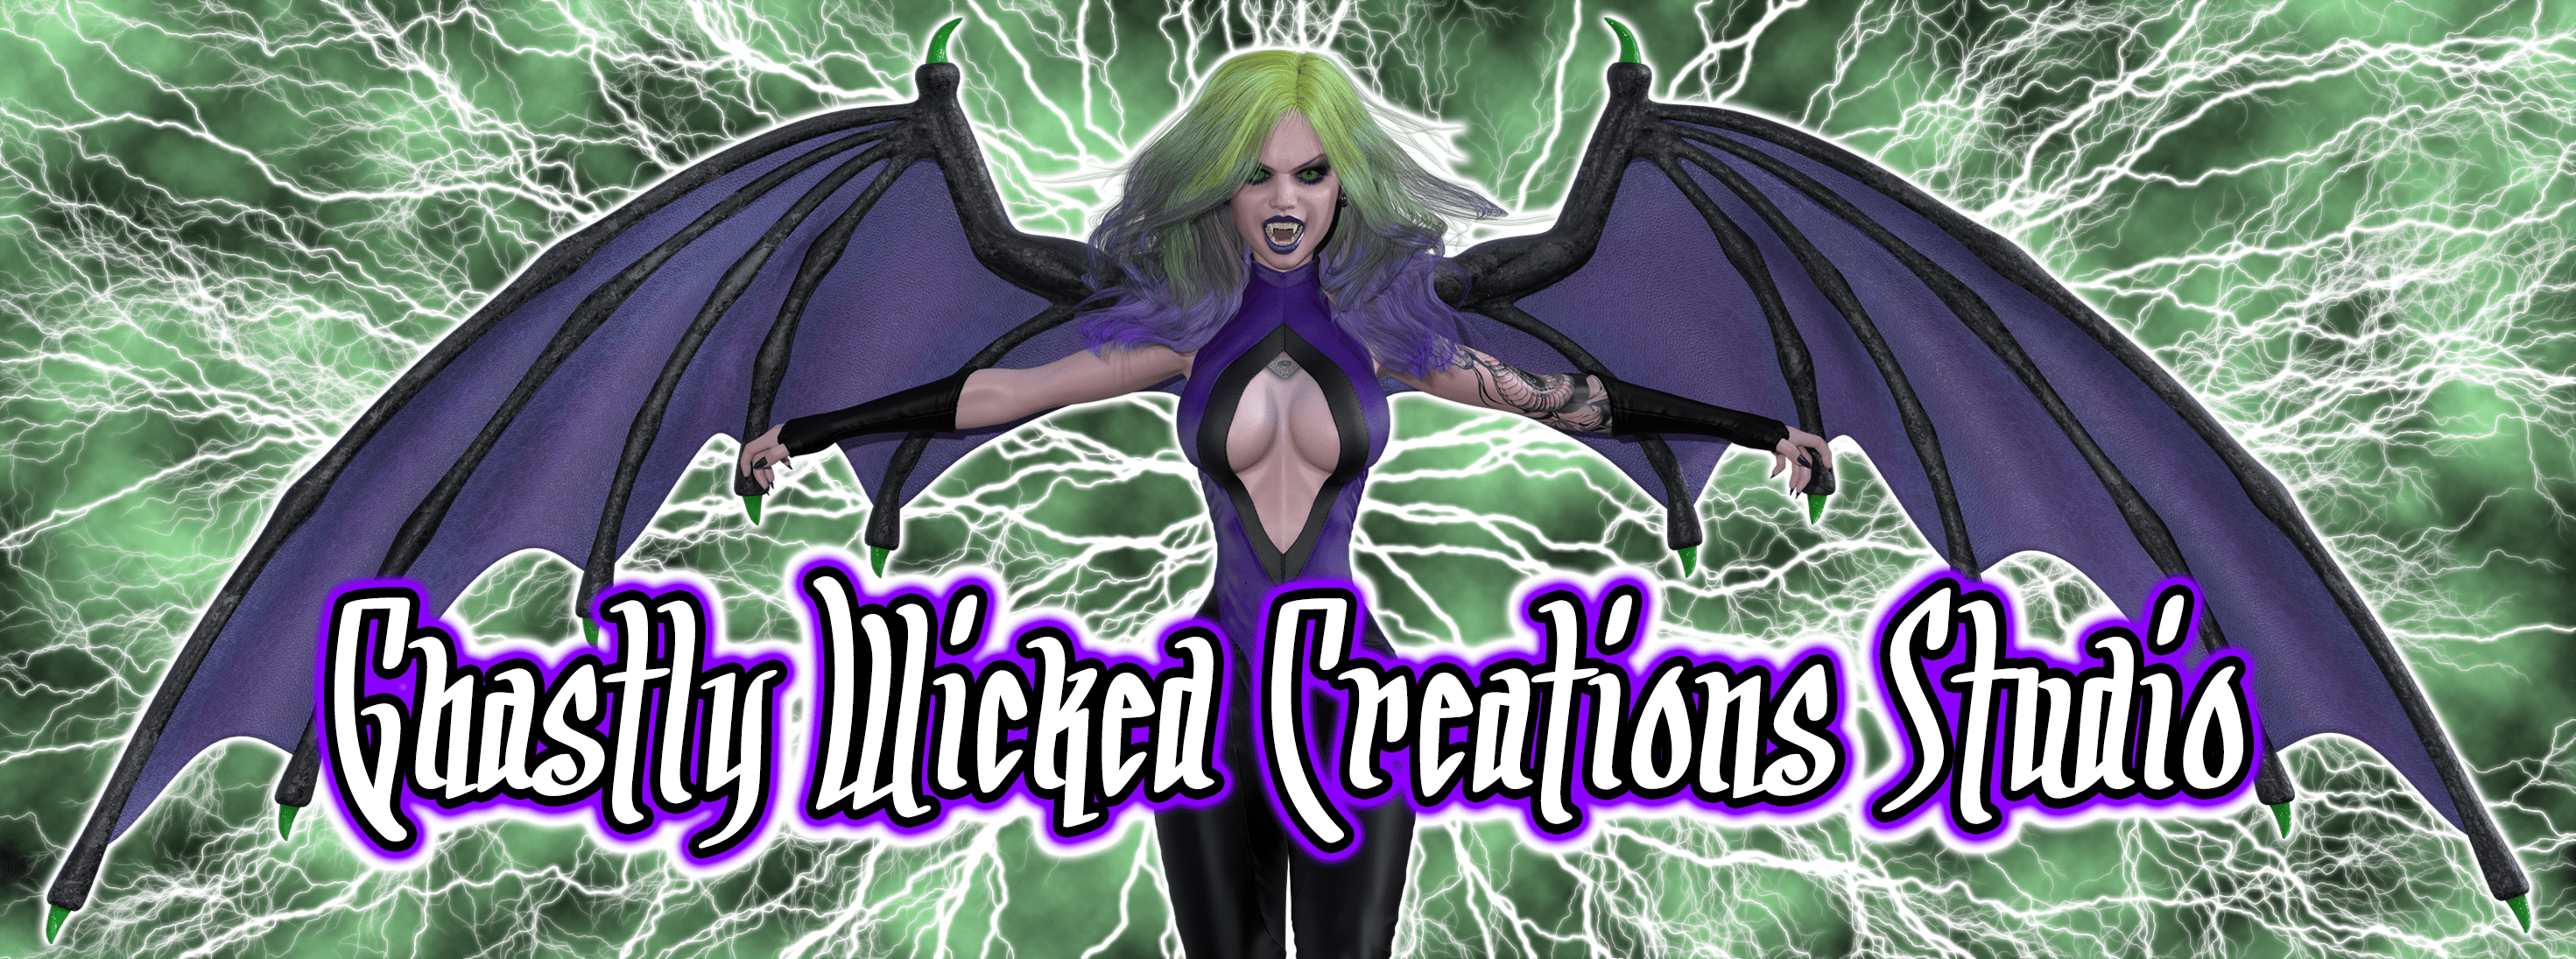 Ghastly Wicked Creations Studio Banner